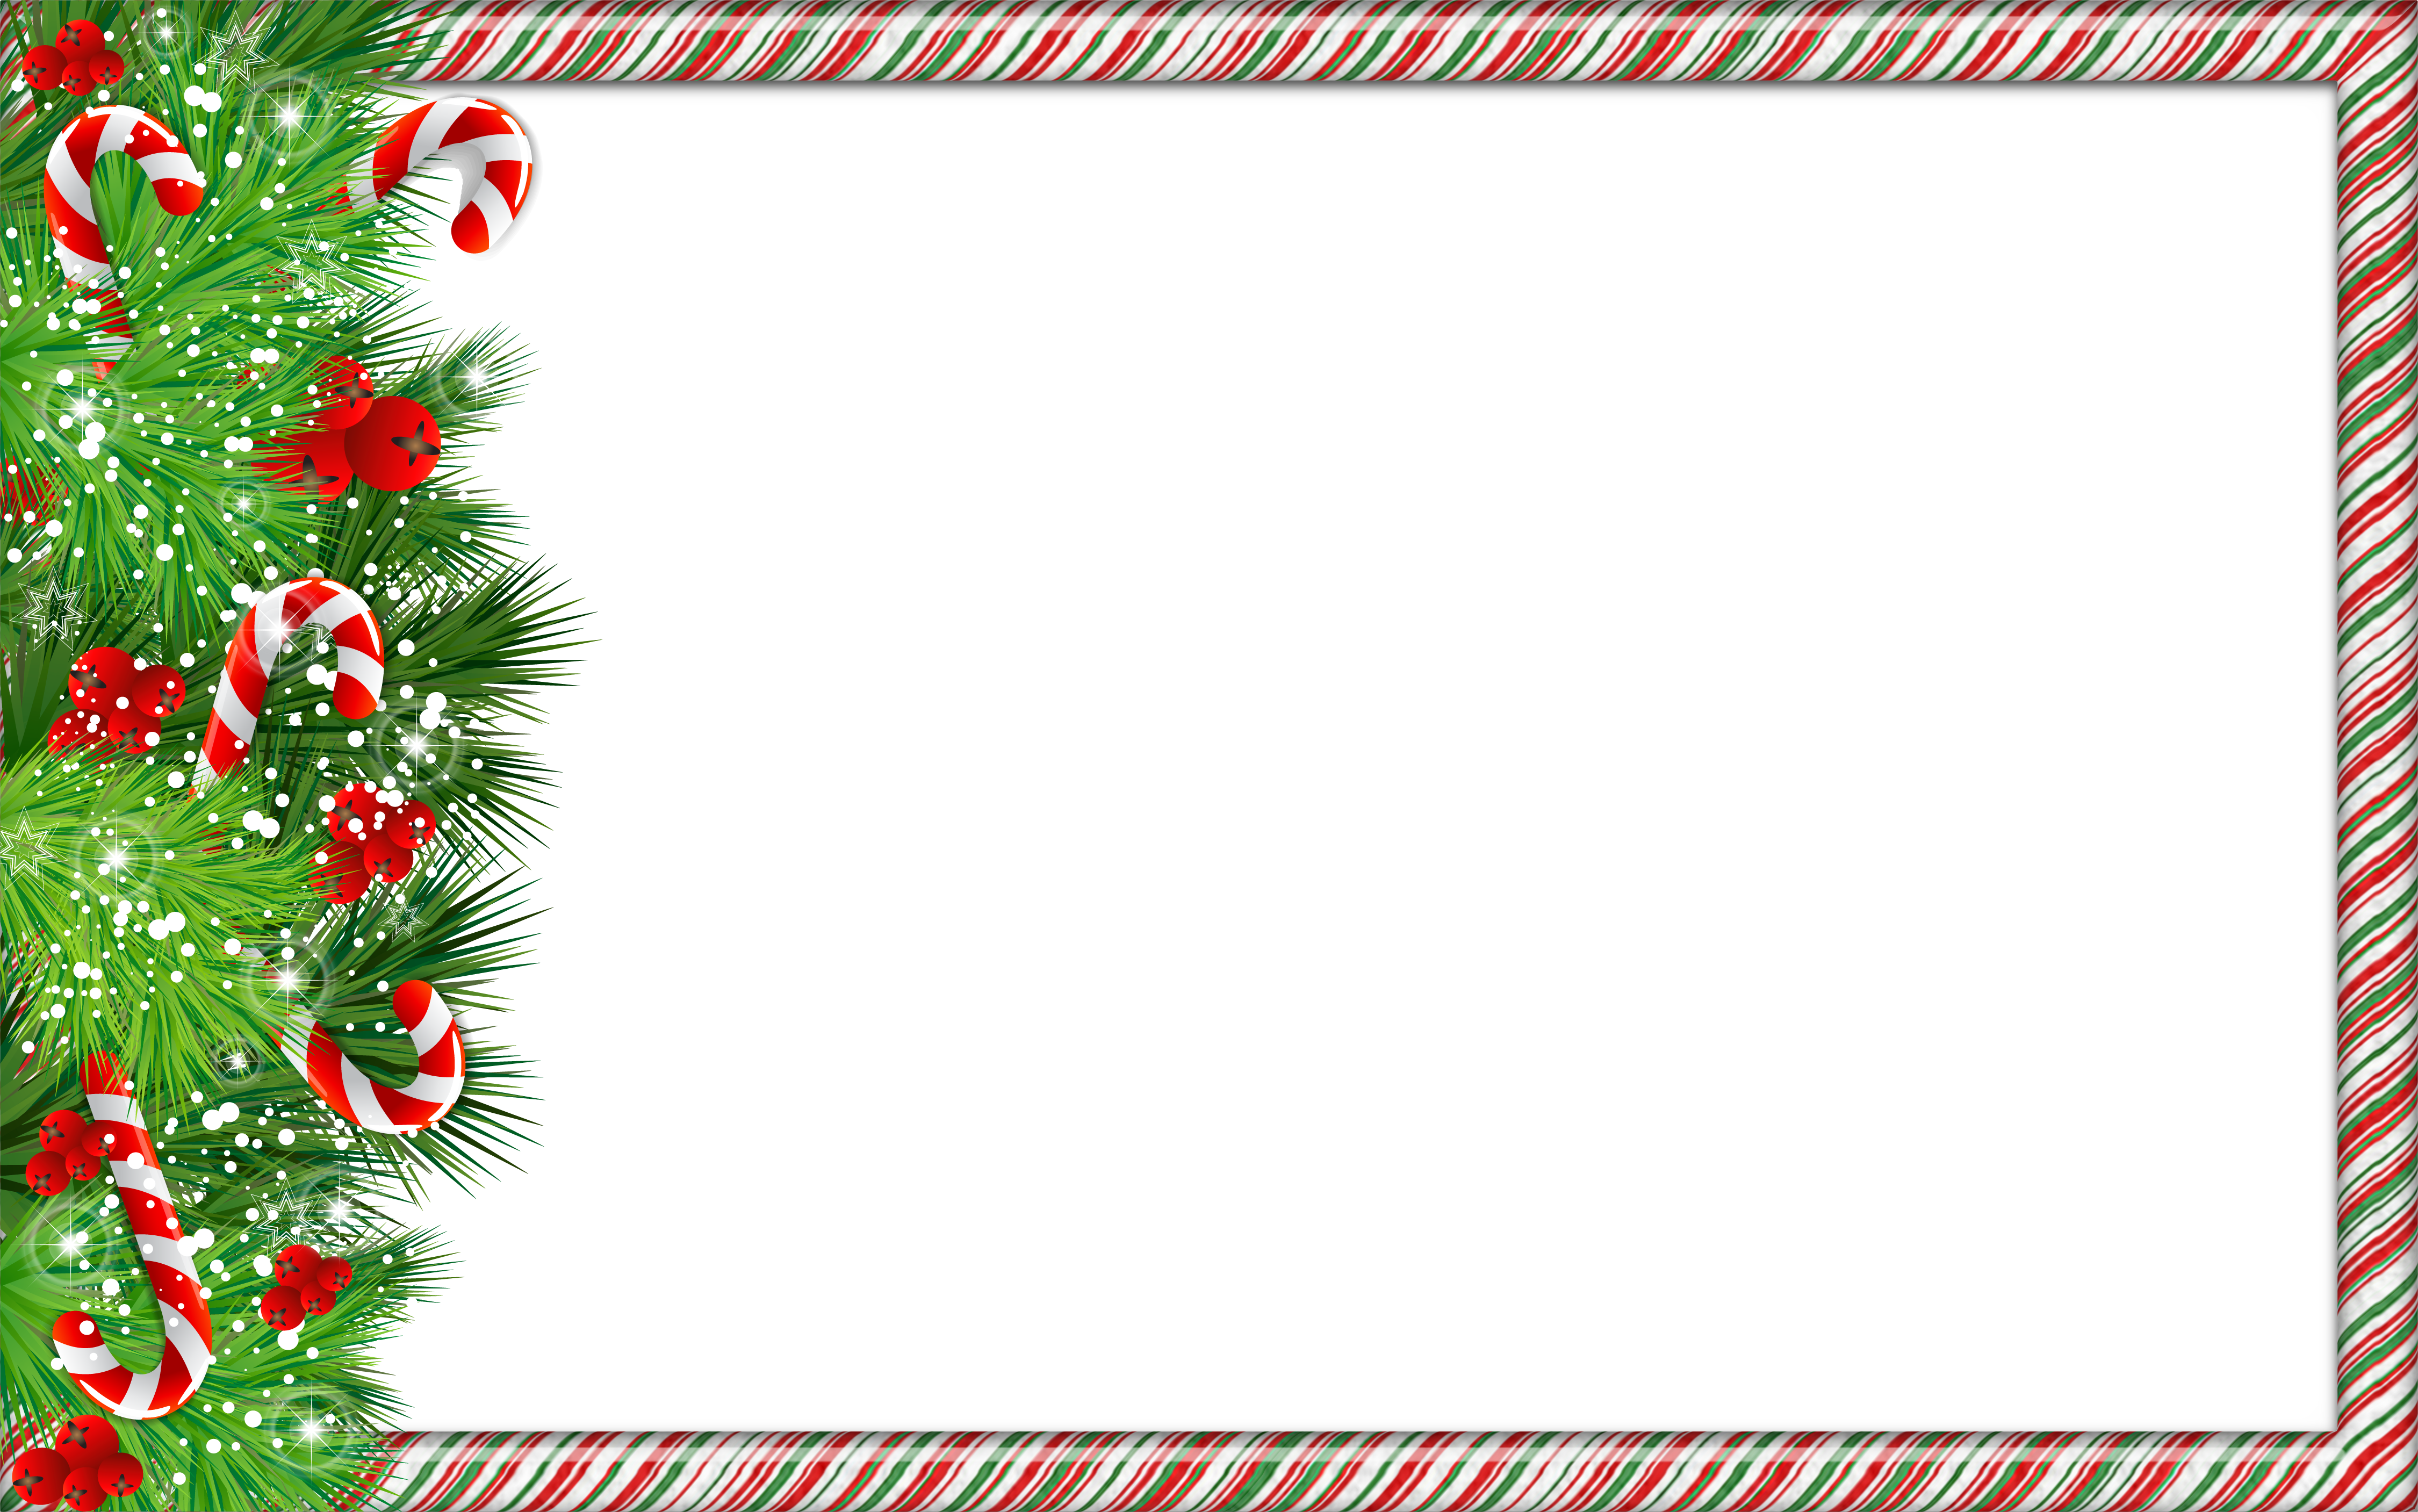 Free photo: christmas frame - image, ornament, holiday - Creative ...